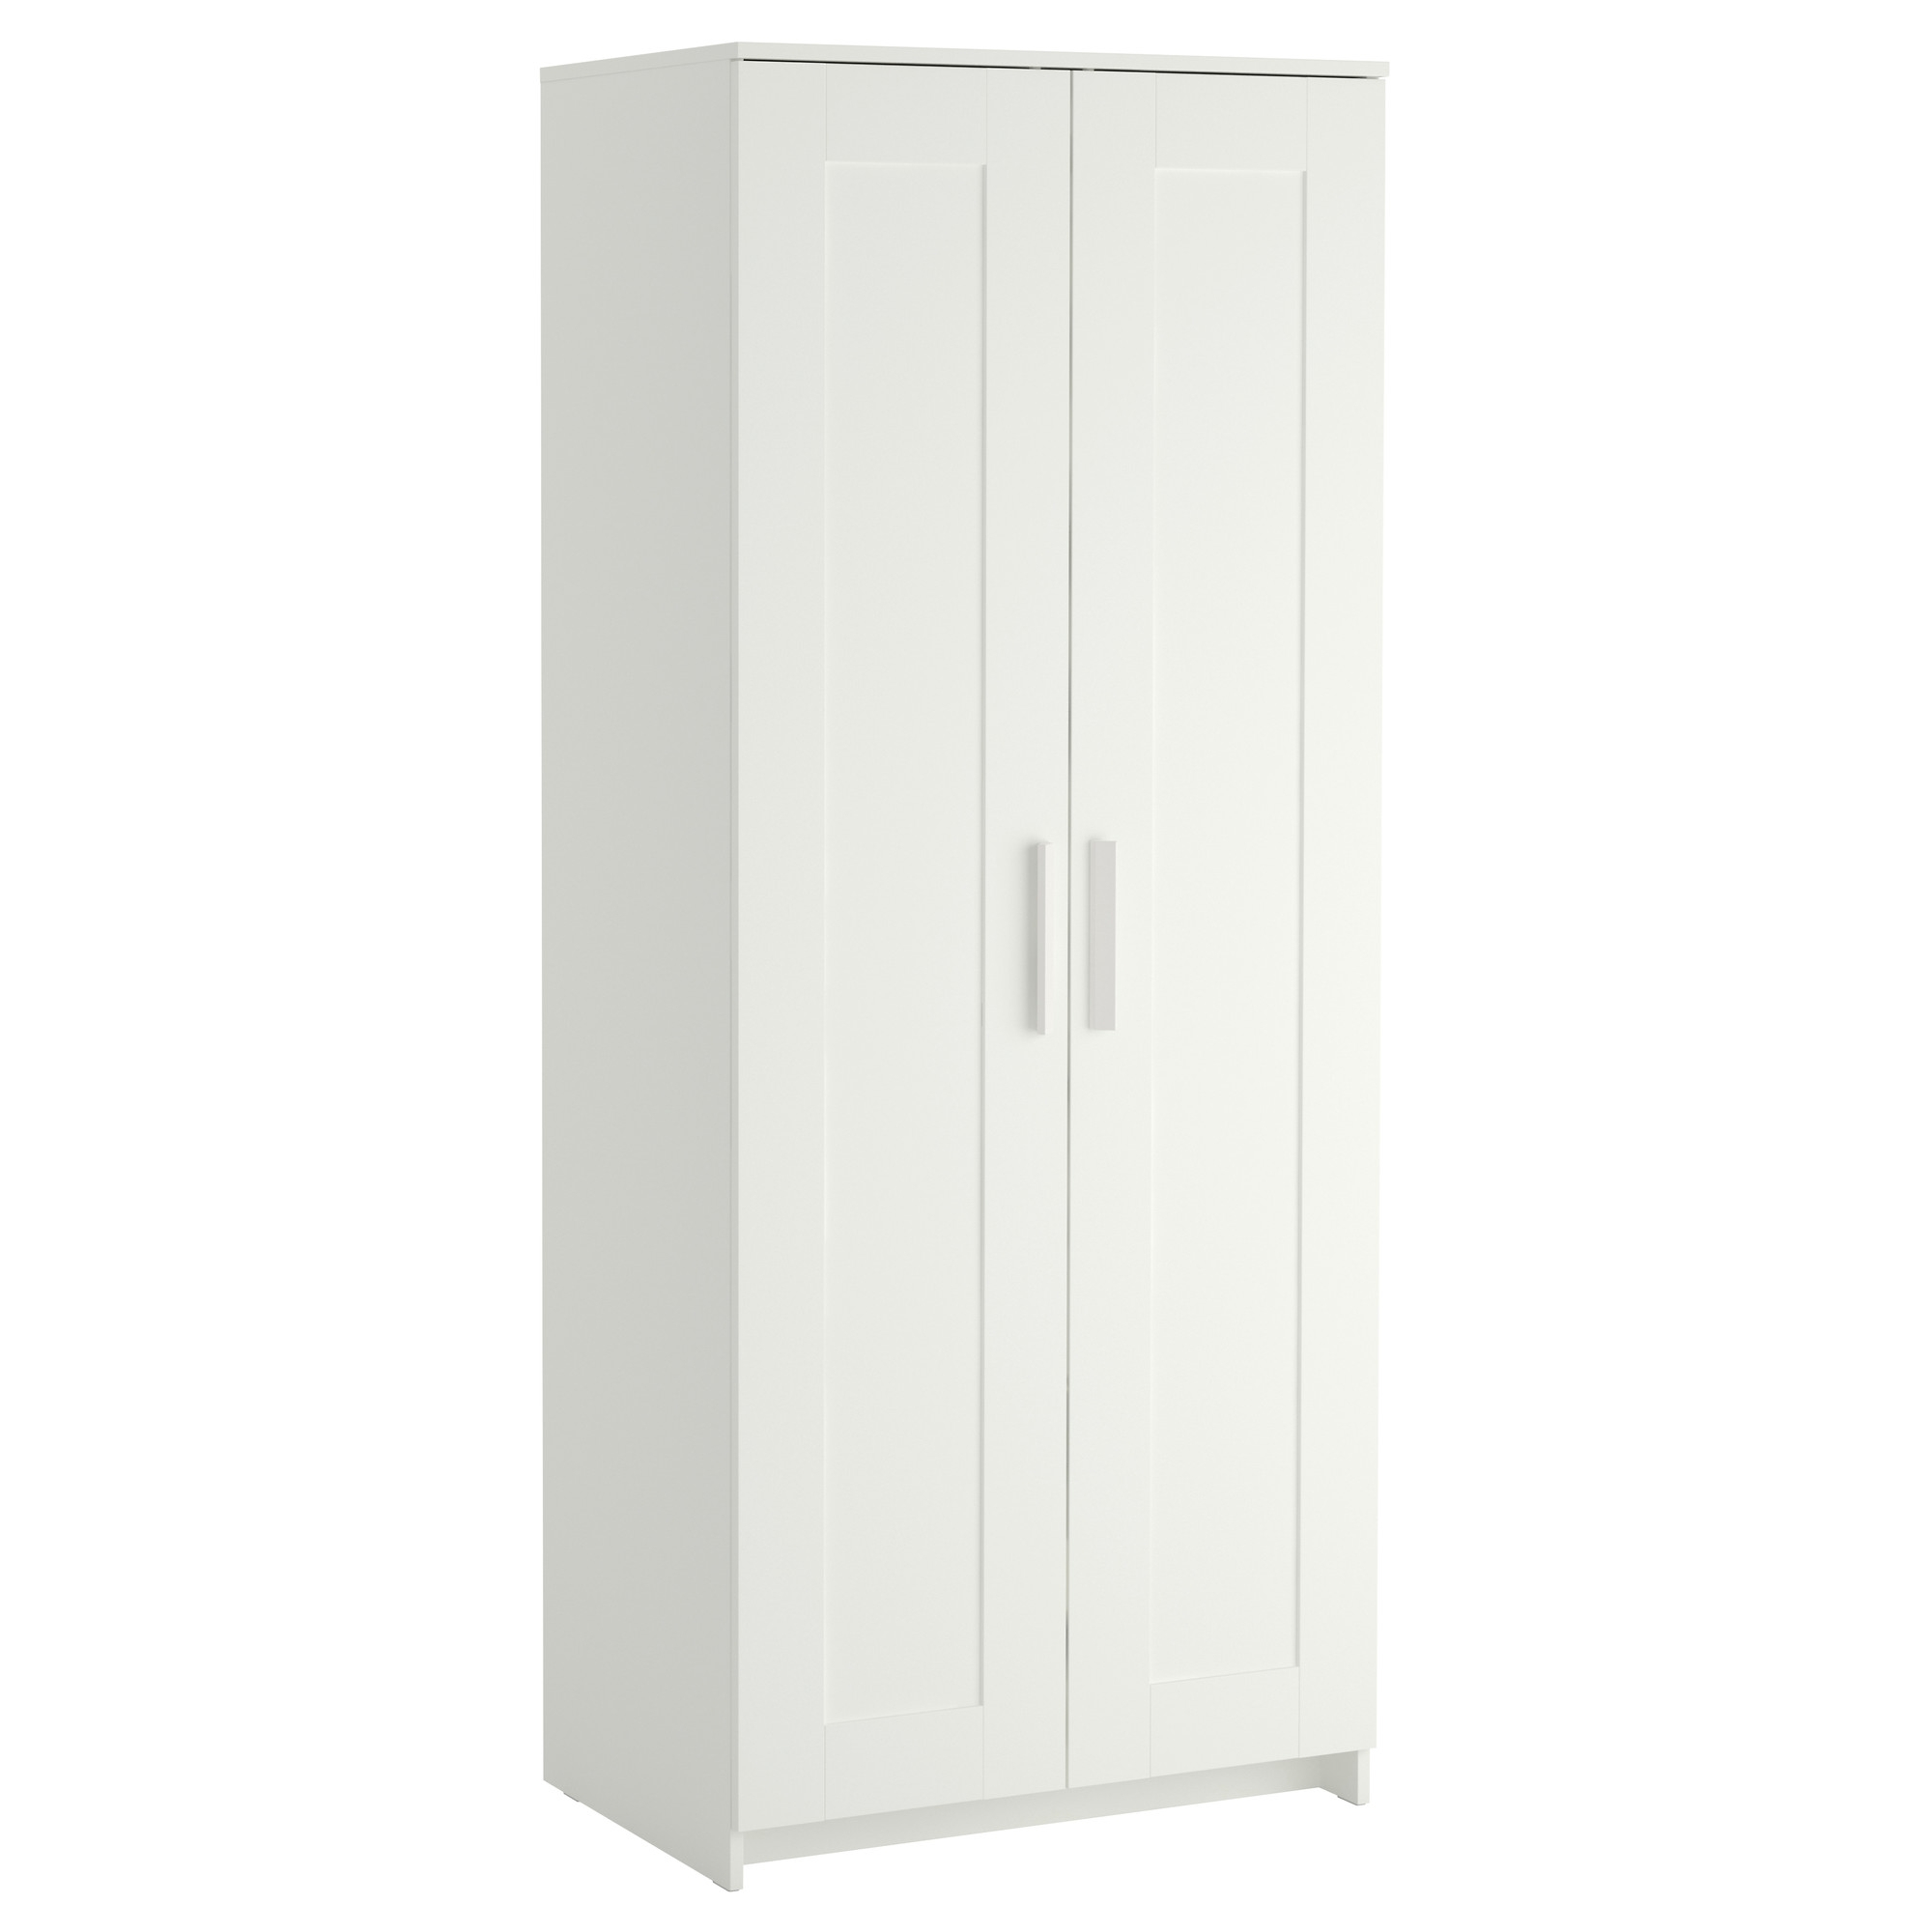 Fashionable Brimnes Wardrobe With 2 Doors White 78x190 Cm – Ikea Intended For Double Rail Wardrobes Ikea (Gallery 5 of 15)